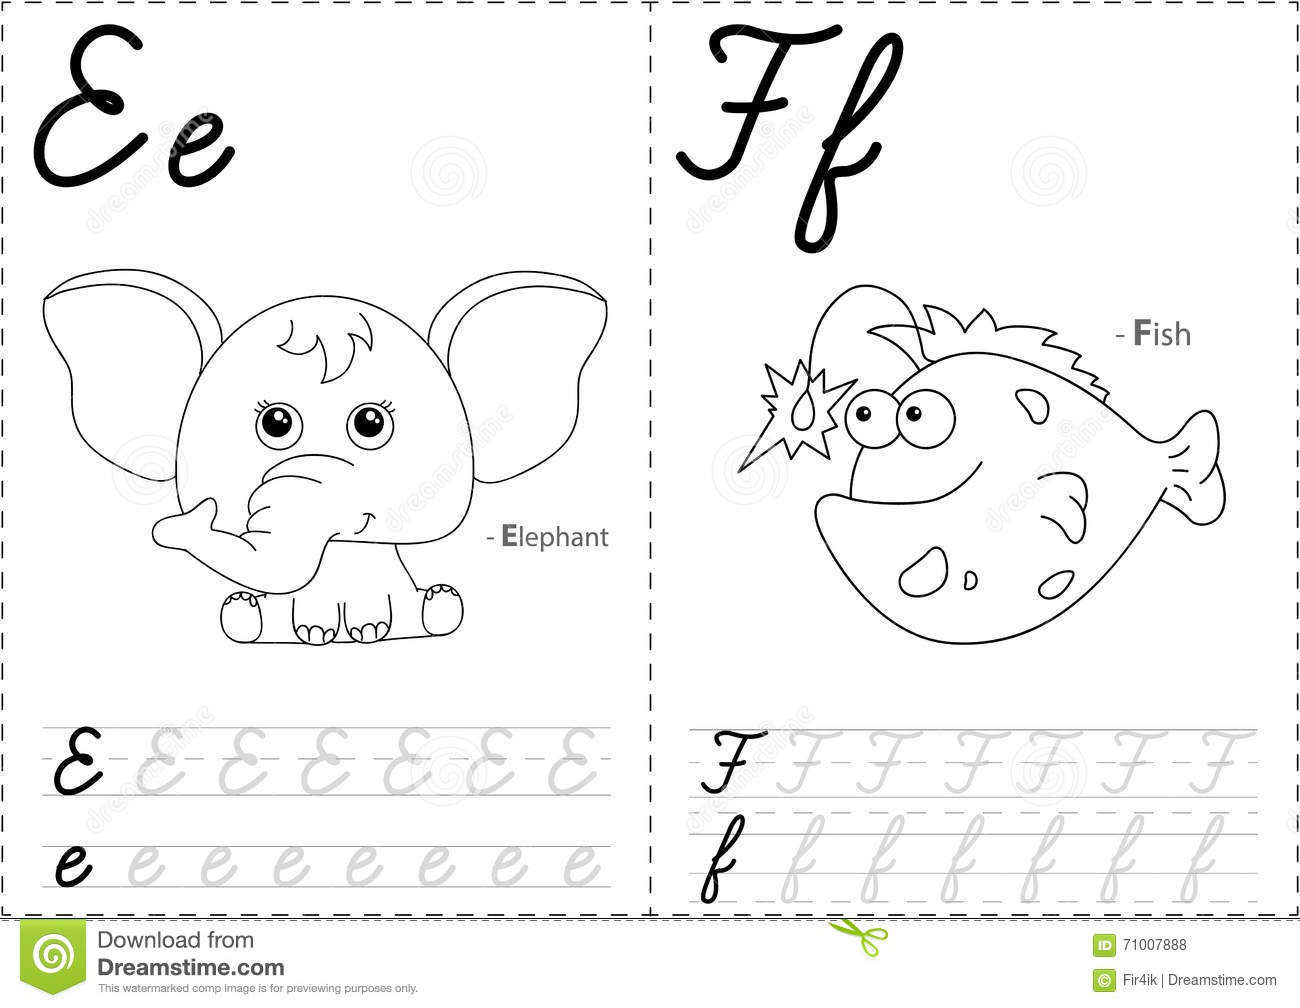 Cartoon Elephant And Fish Alphabet Tracing Worksheet Stock Vector